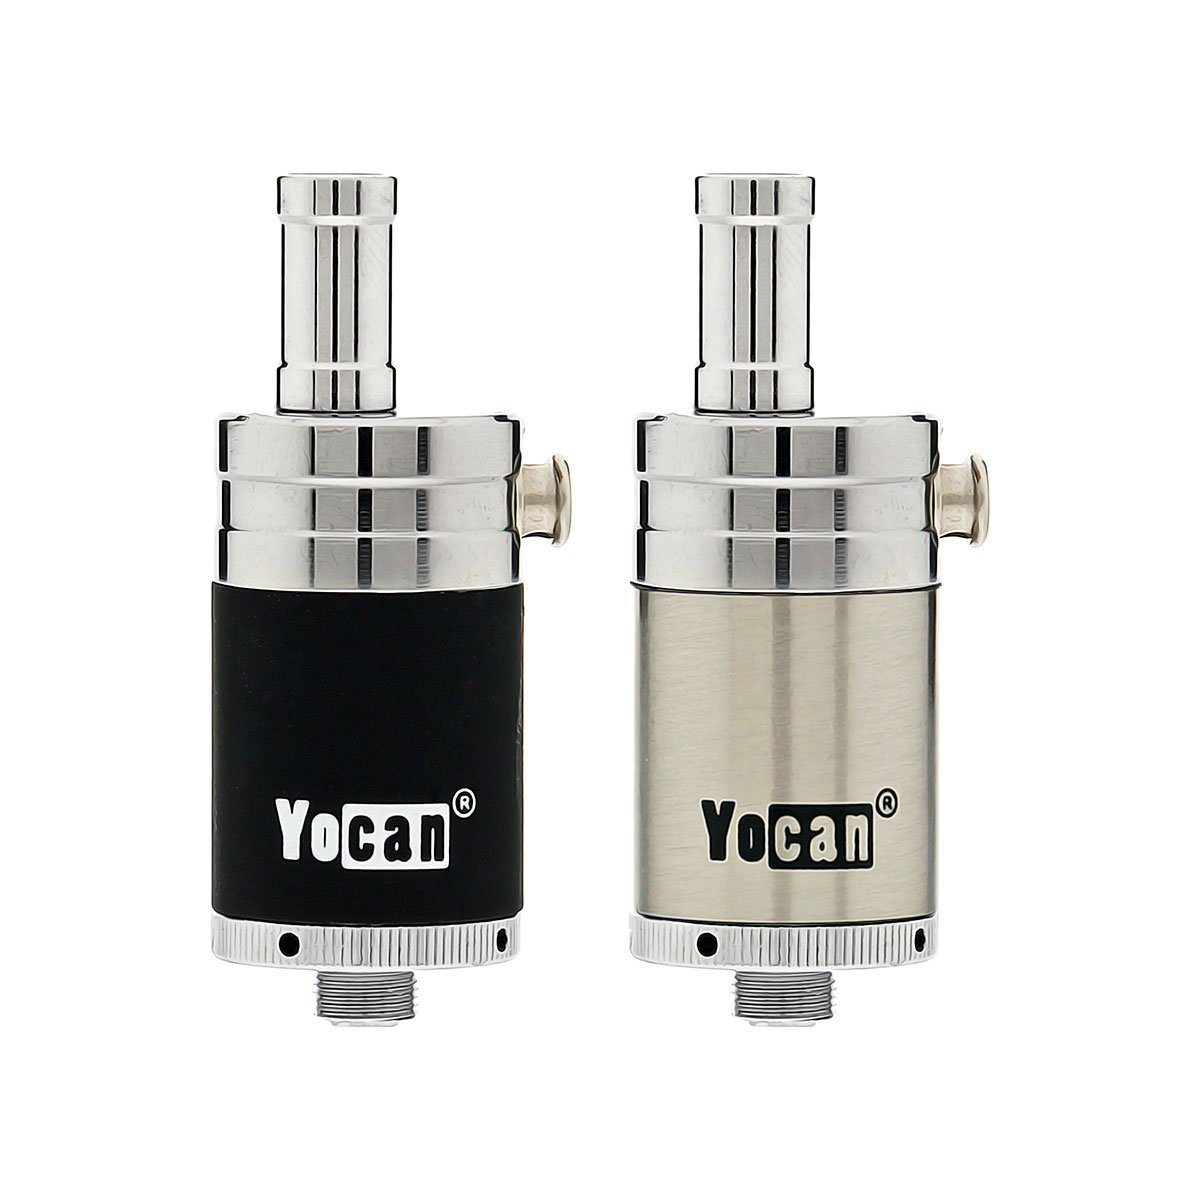 Yocan NYX Wax Tank Overview From the wax vaping specialists at Yocan comes The Yocan NYX Wax Tank. This Stainless Steel atomizer is made specifically for wax concentrates and was engineered with a threaded 510 connection. This connection makes it compatible with your favorite low wattage box mods as the suggested wattage for this tank is between 15 and 25W. Even at these suggested lower wattages, this tank provides substantial vapor production. In utilizing QDC technology, the Yocan NYX Wax Tank